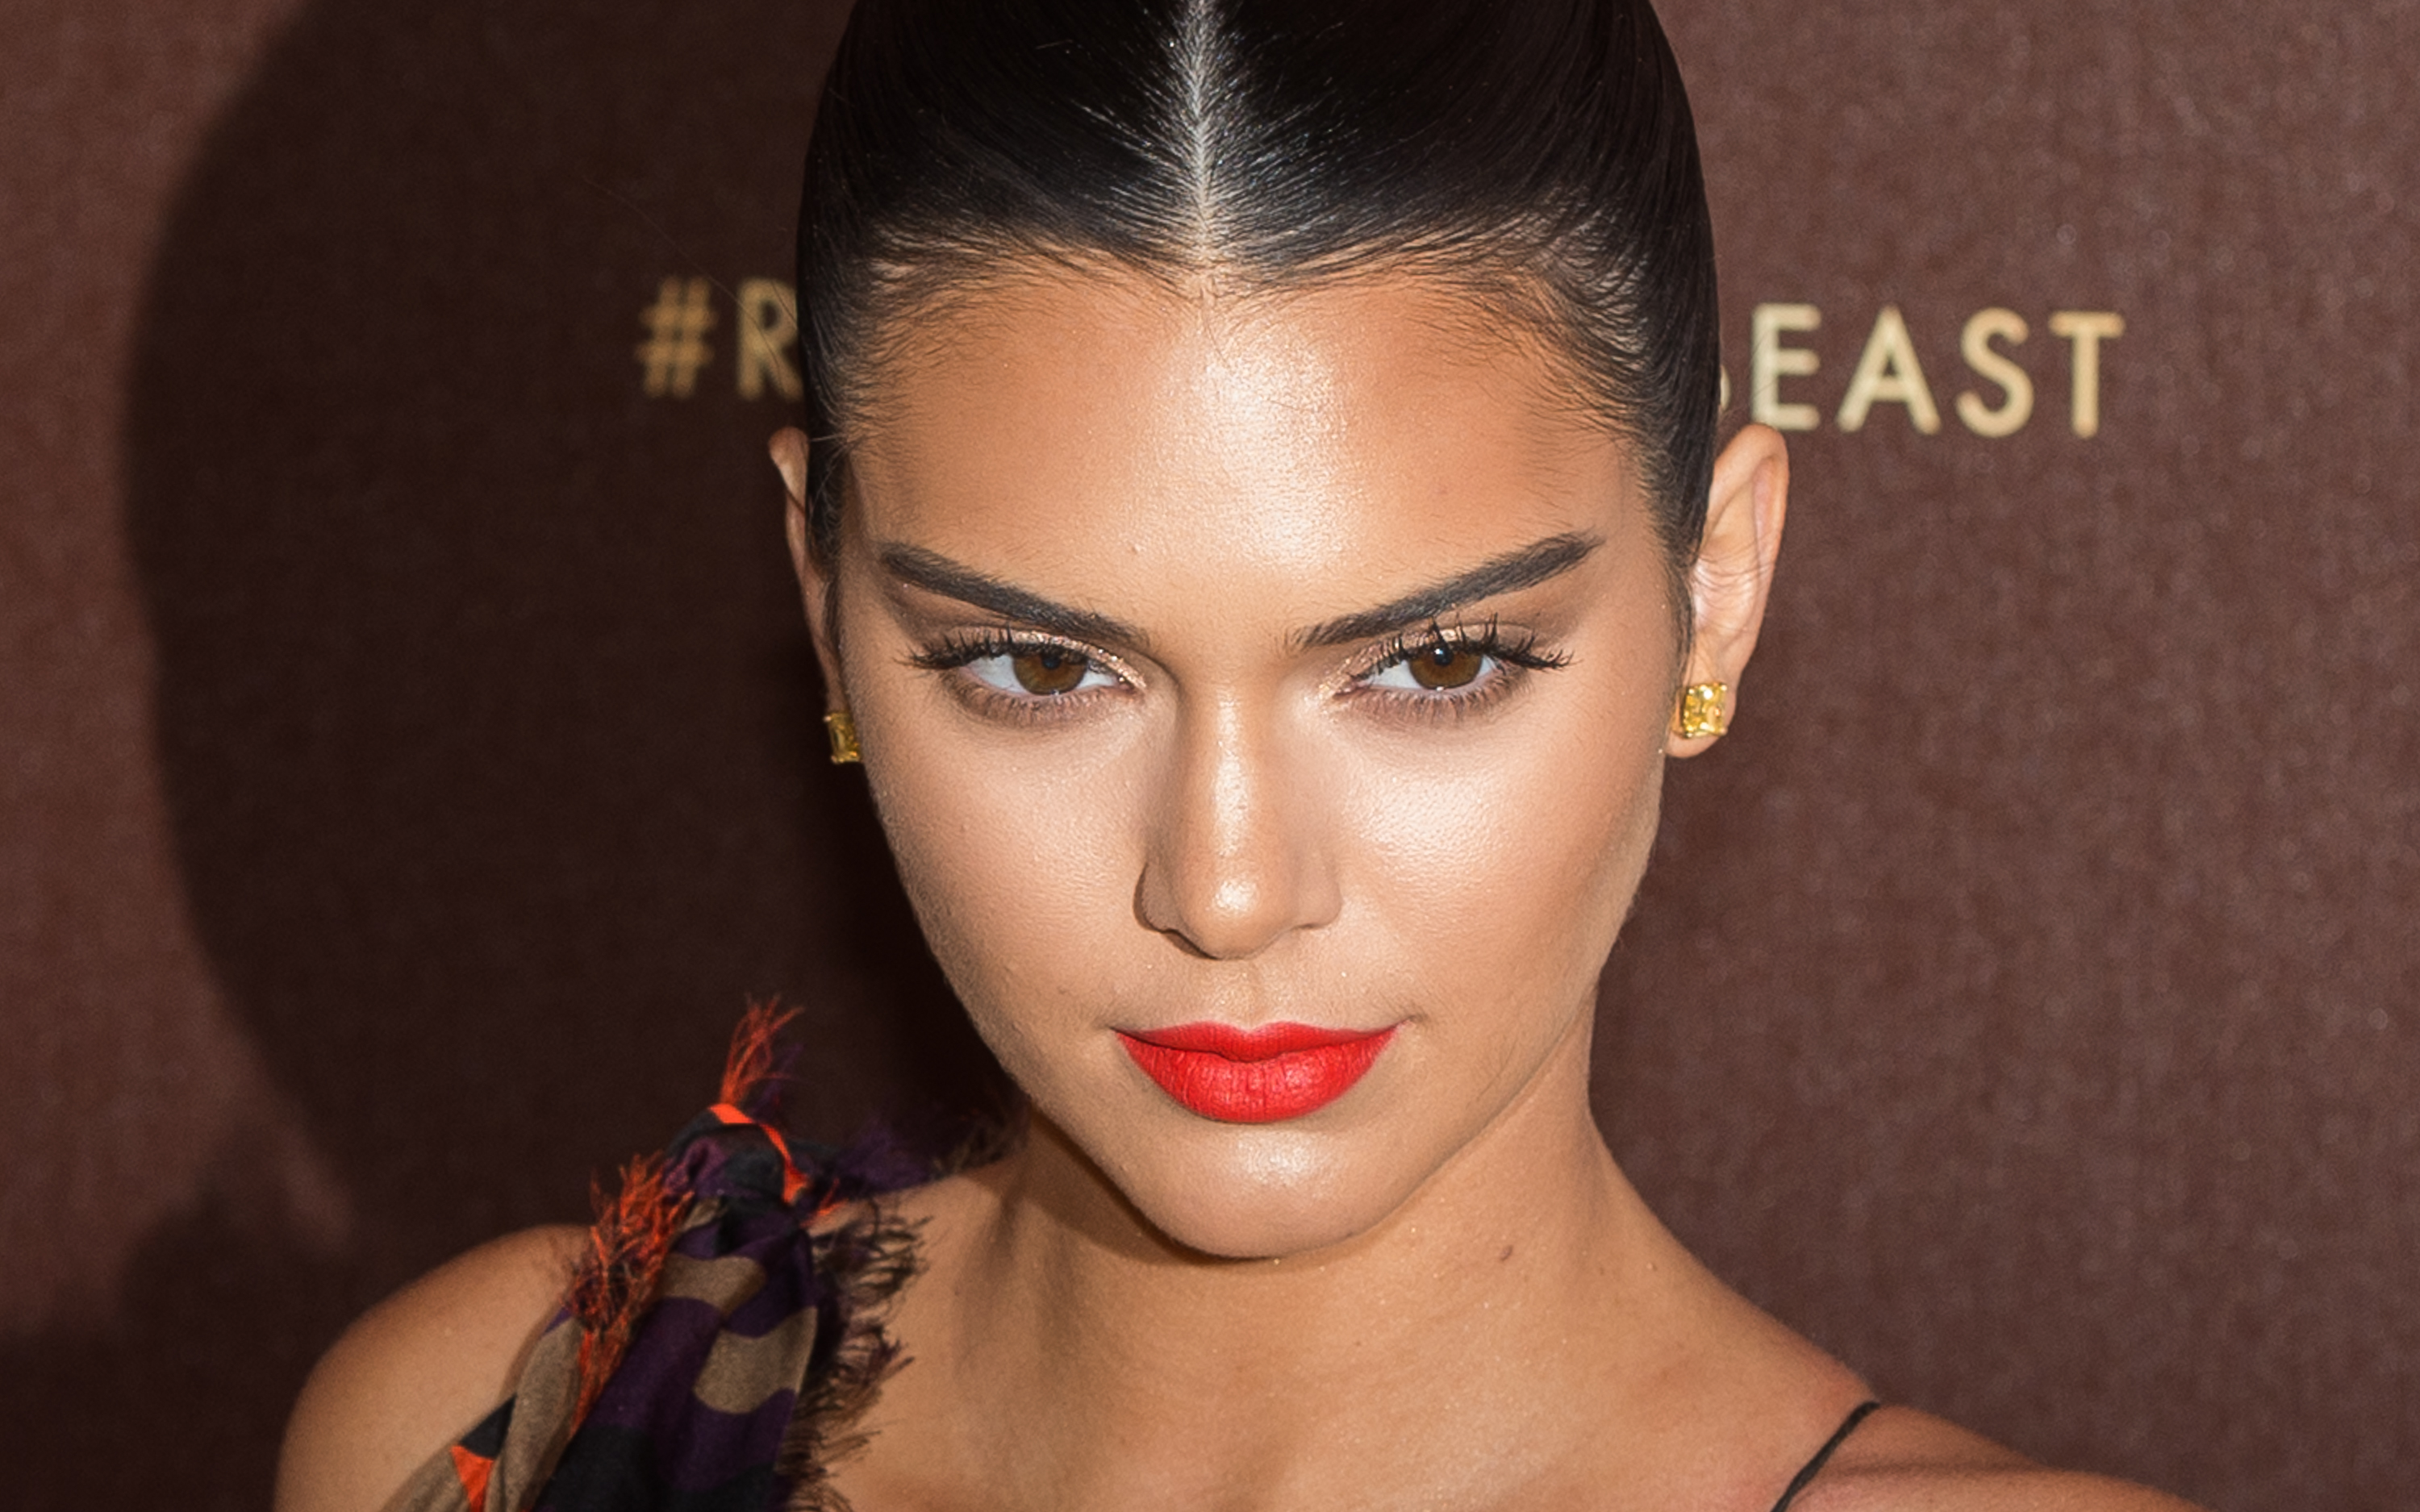 Kendall Jenner totally looks like POSH SPICE in these new pics!